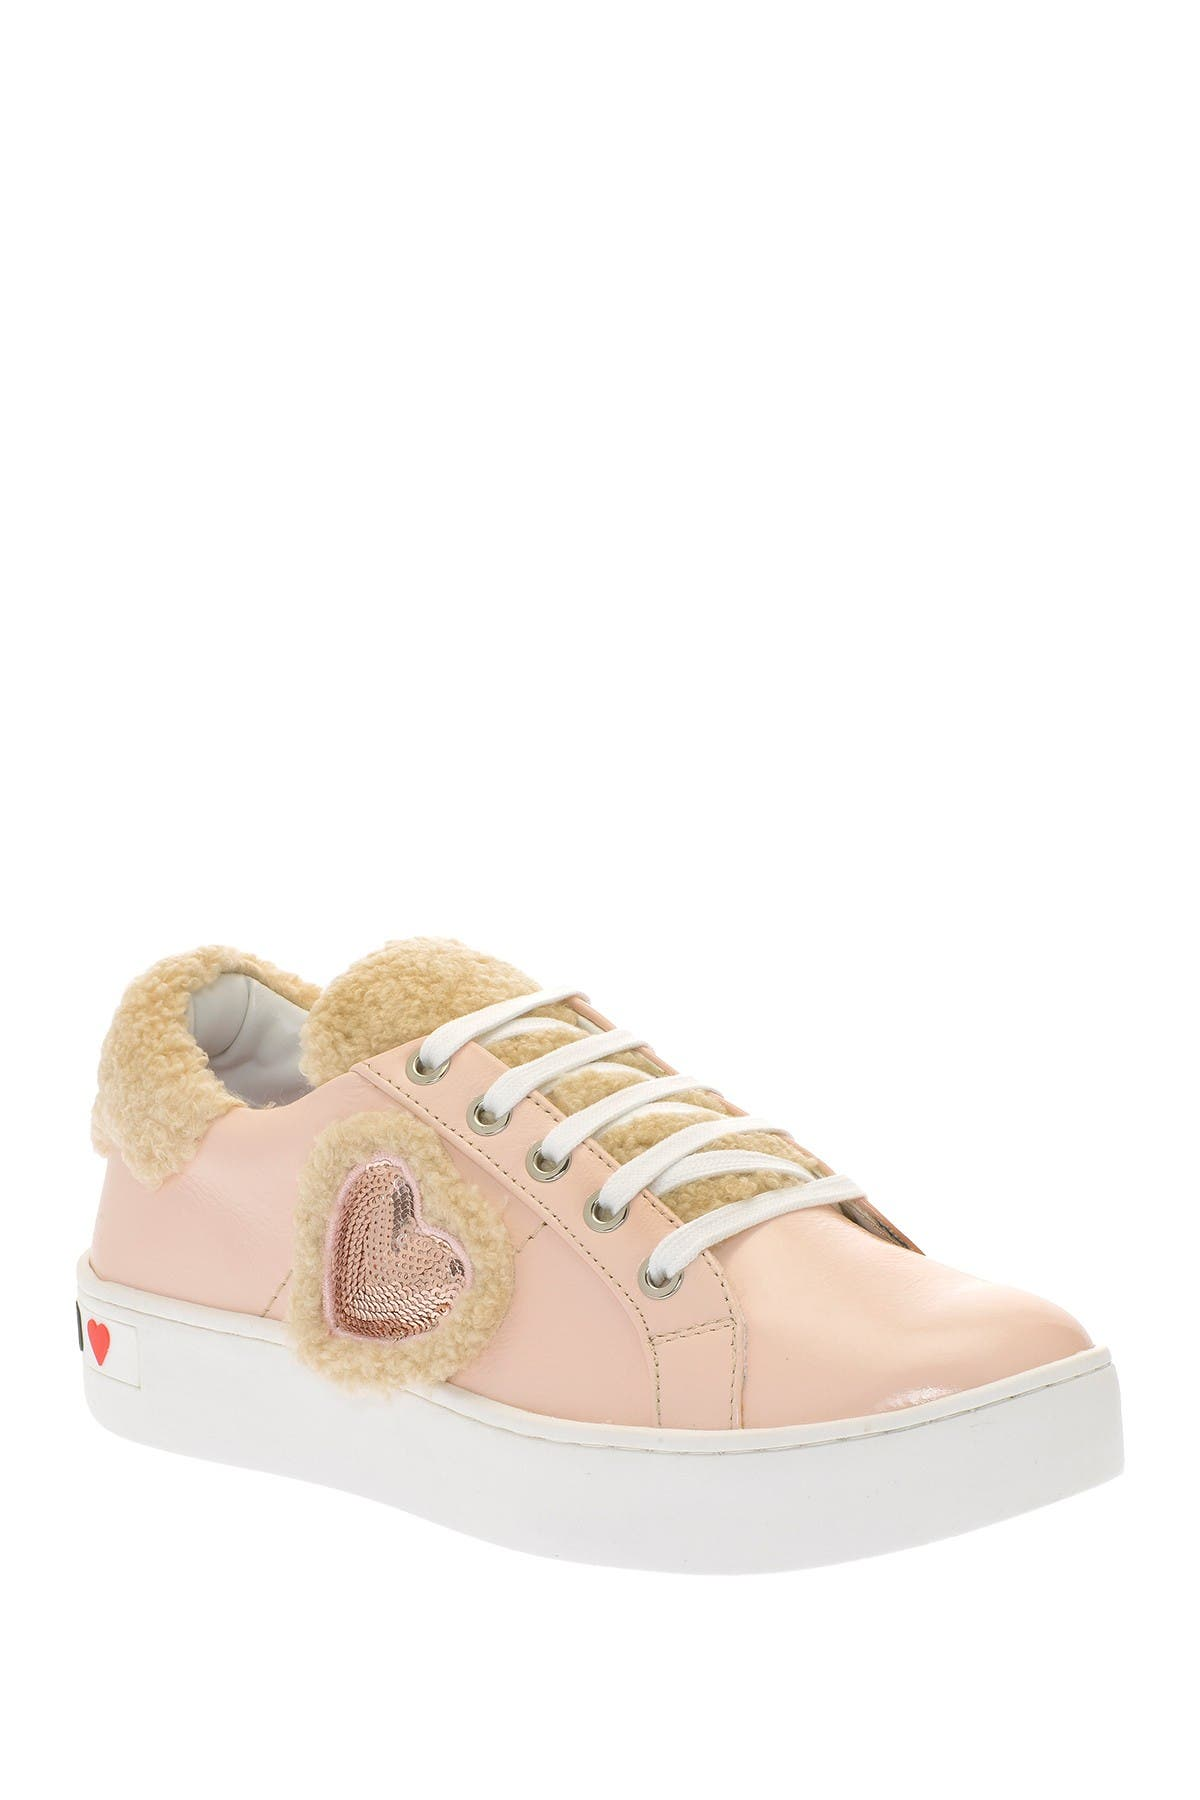 Image of LOVE Moschino Heart Faux Shearling Sneaker